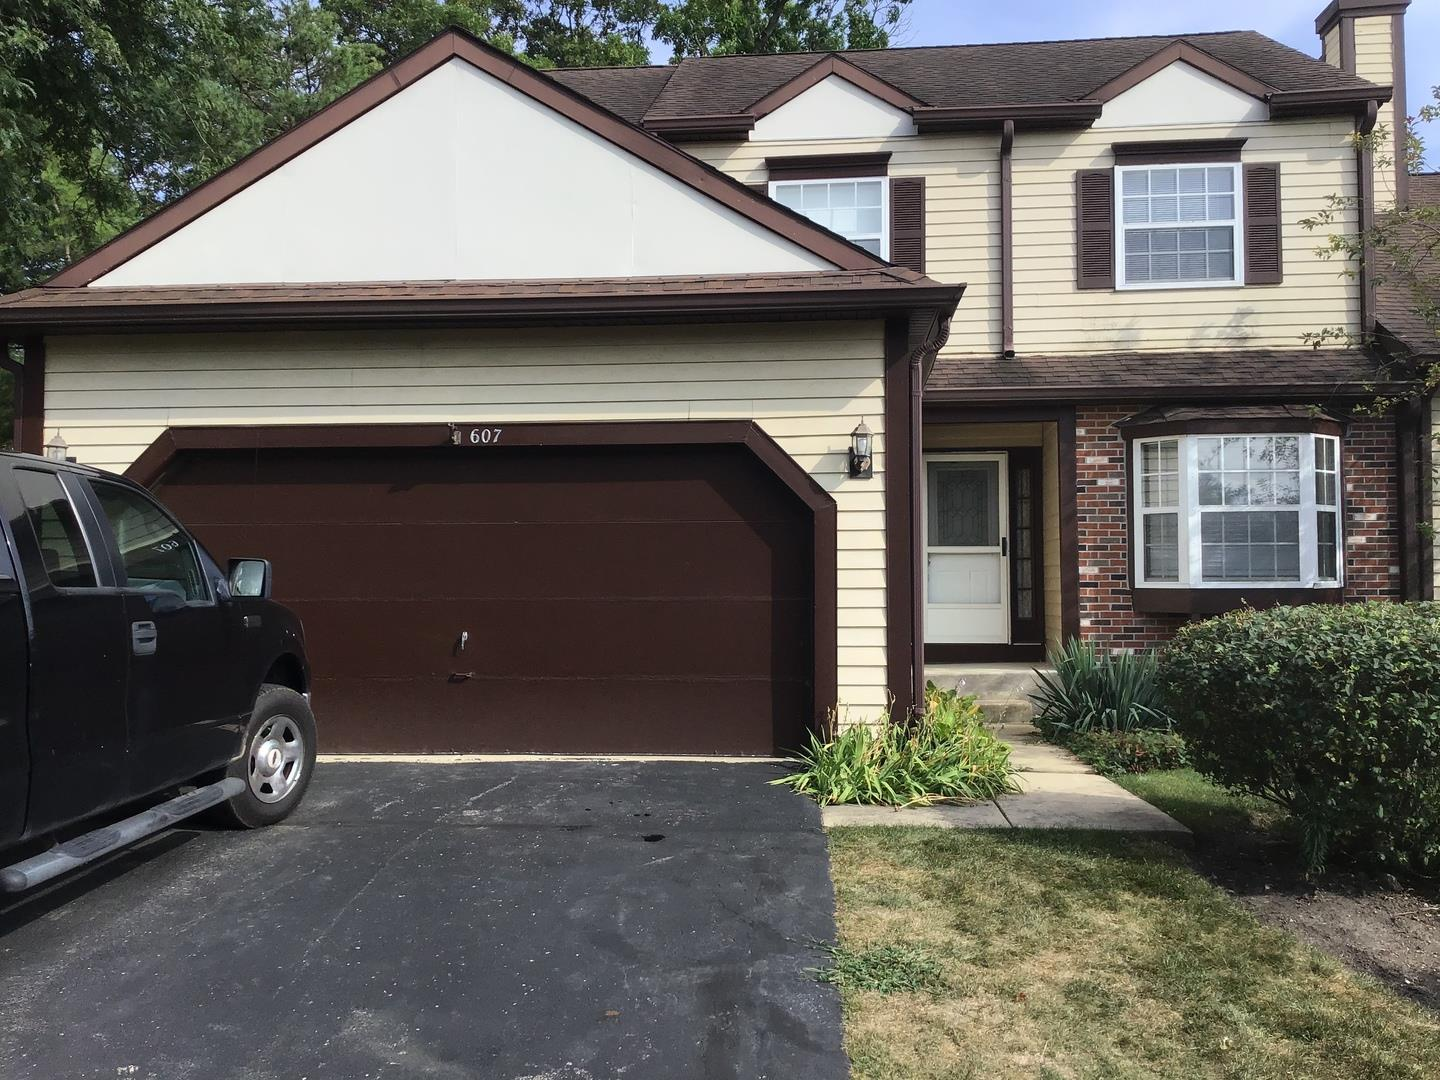 607 ASCOT Lane, Streamwood, IL 60107 - #: 10837789